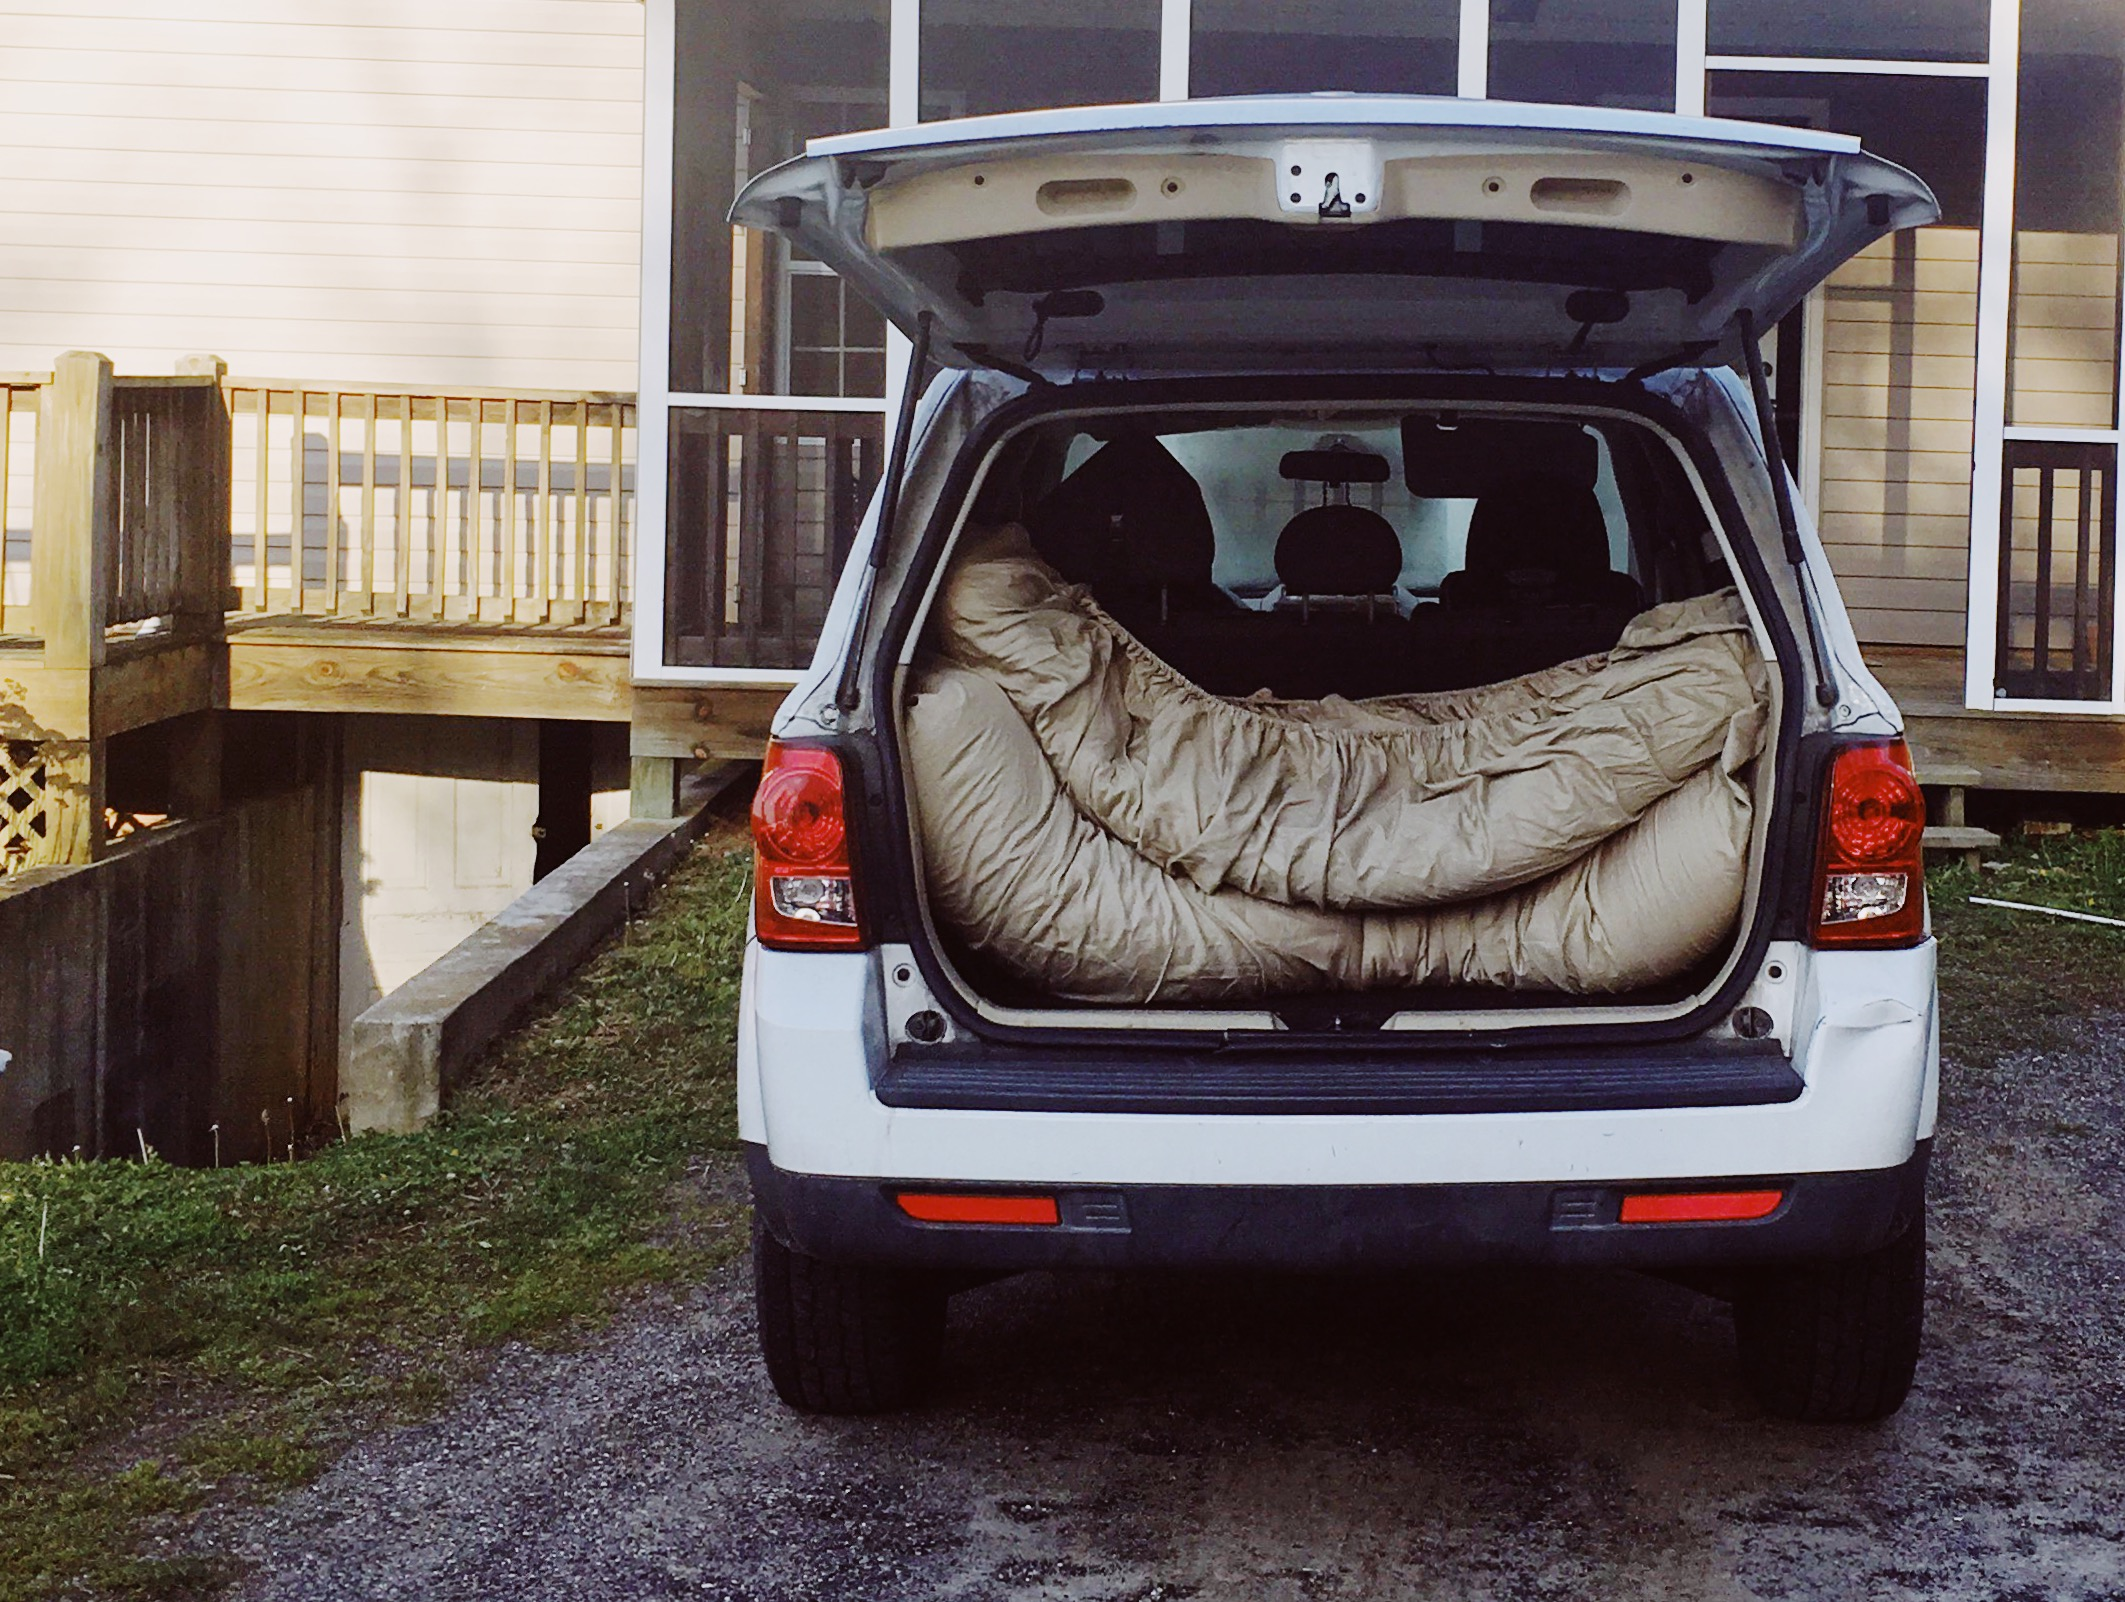 We put a fitted sheet on, folded it up and put it in the back of our car. Easy!